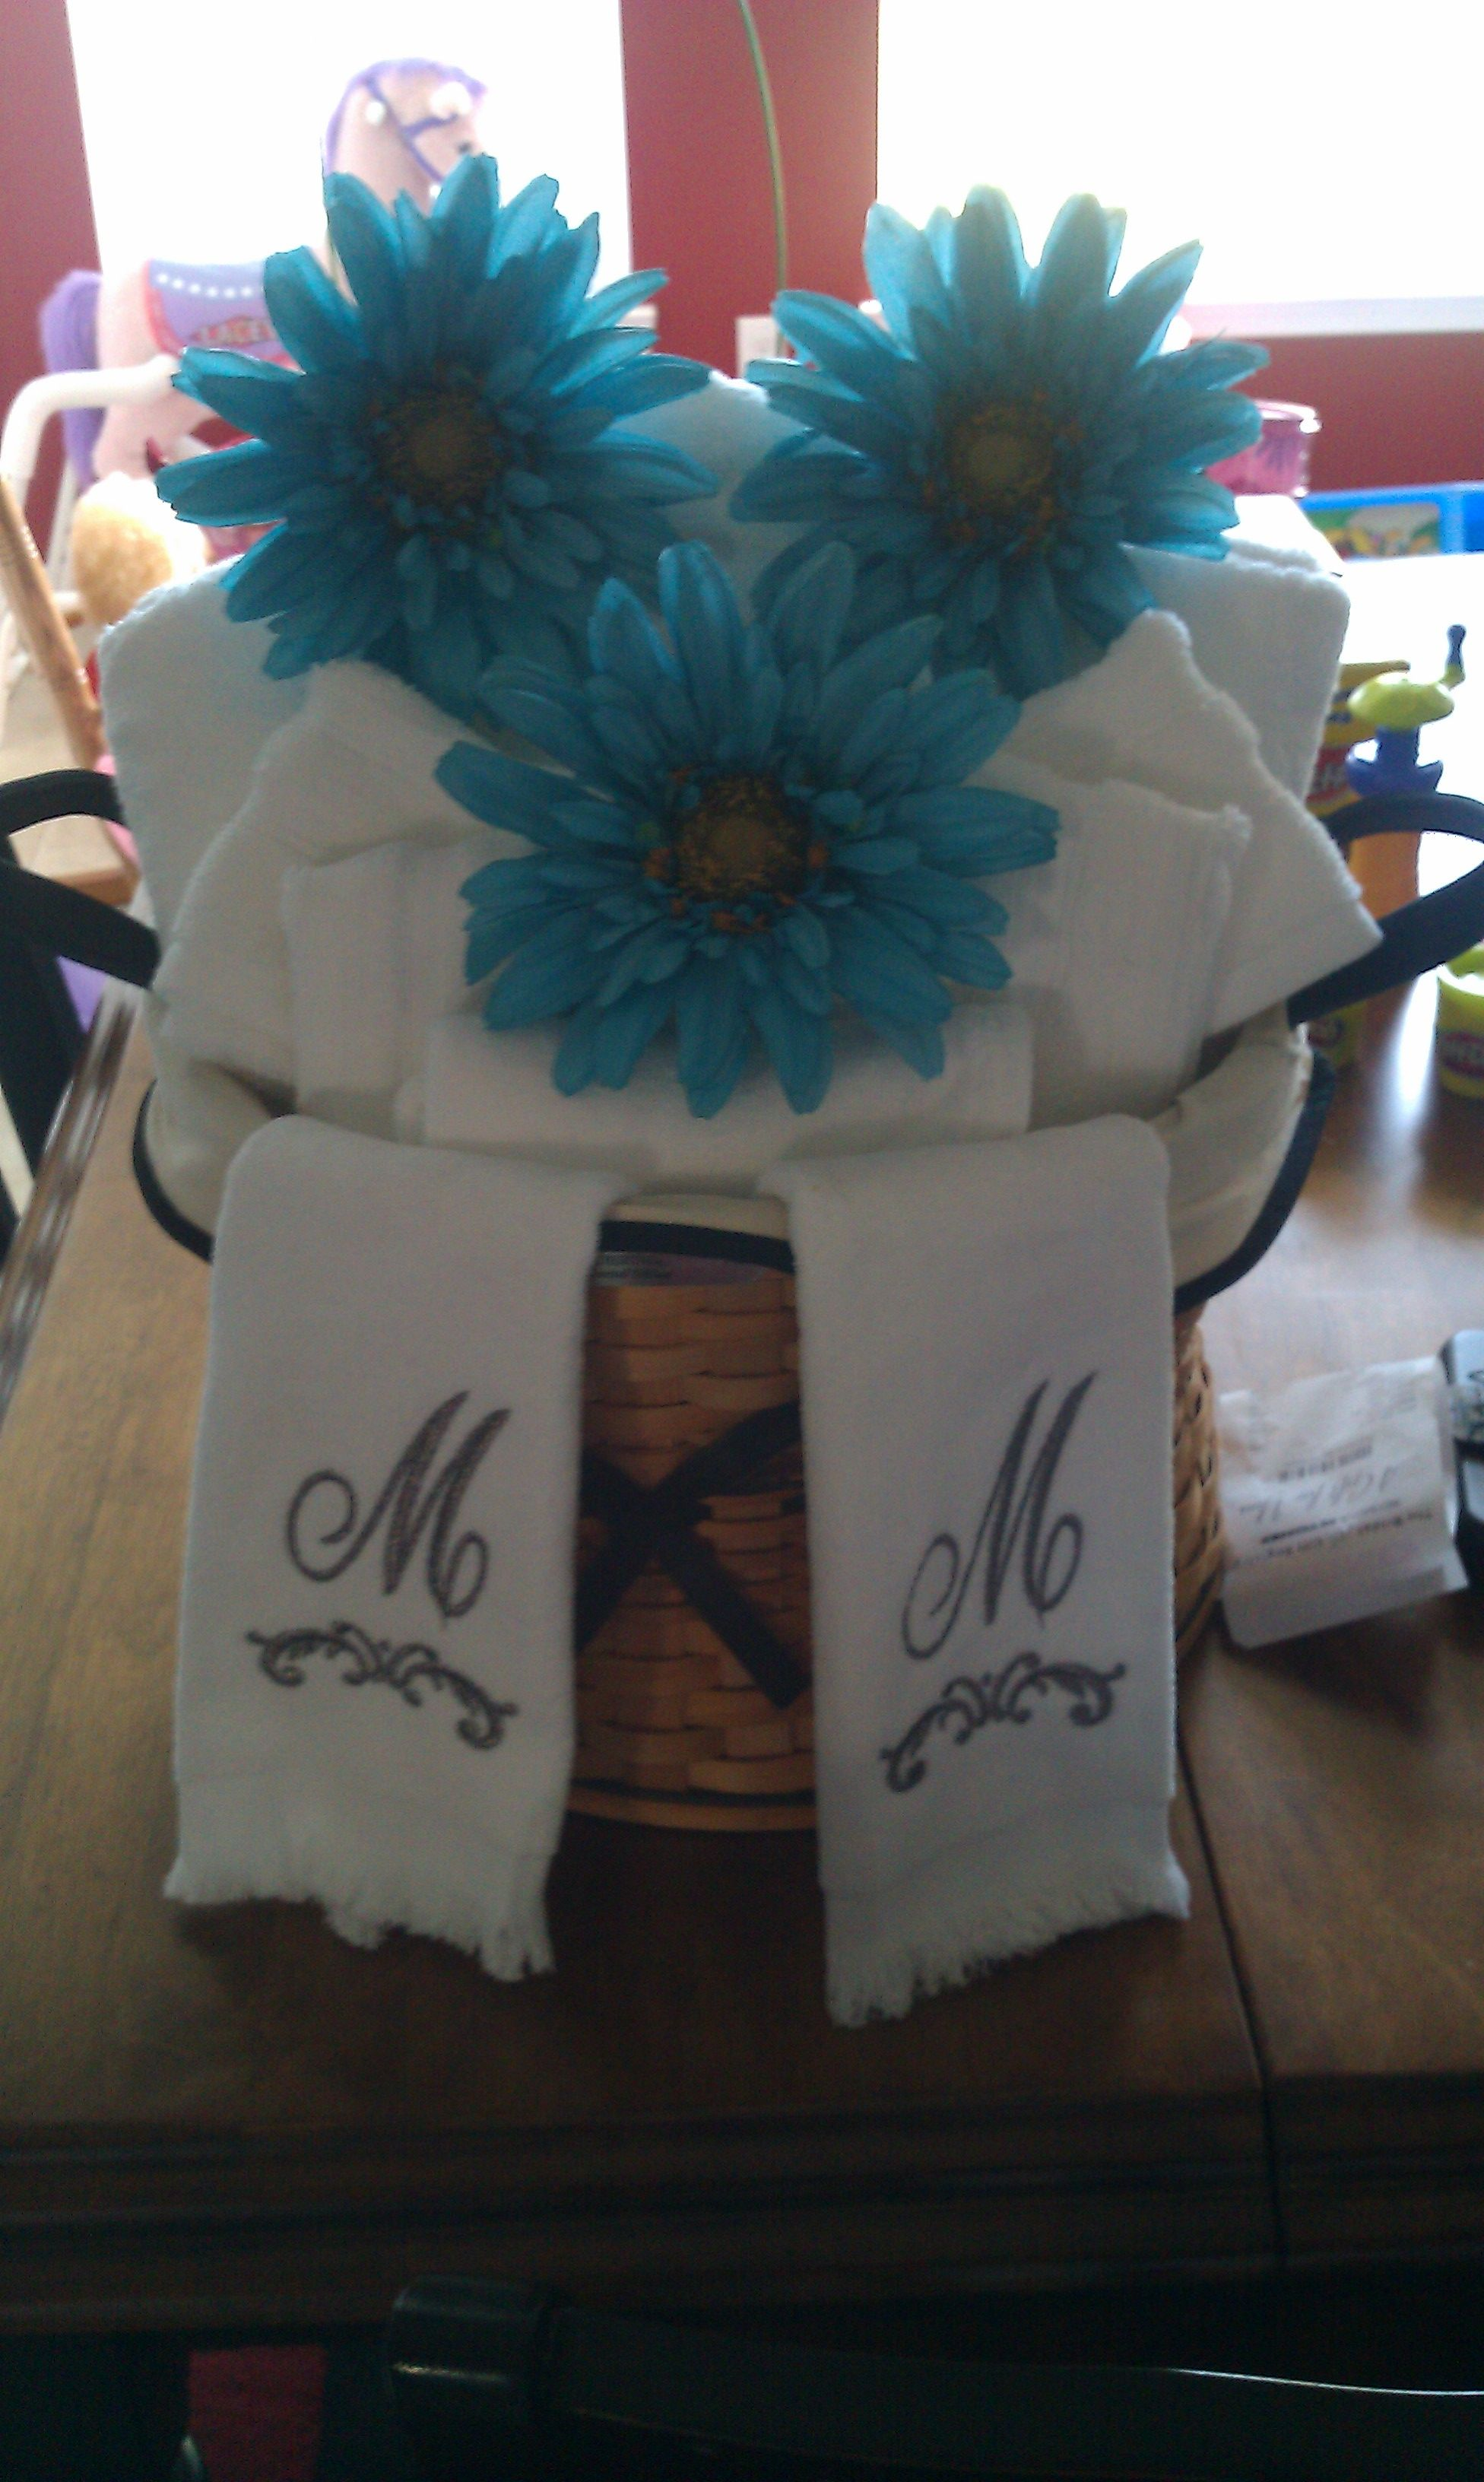 A cute way to give towels for a wedding shower gift ...